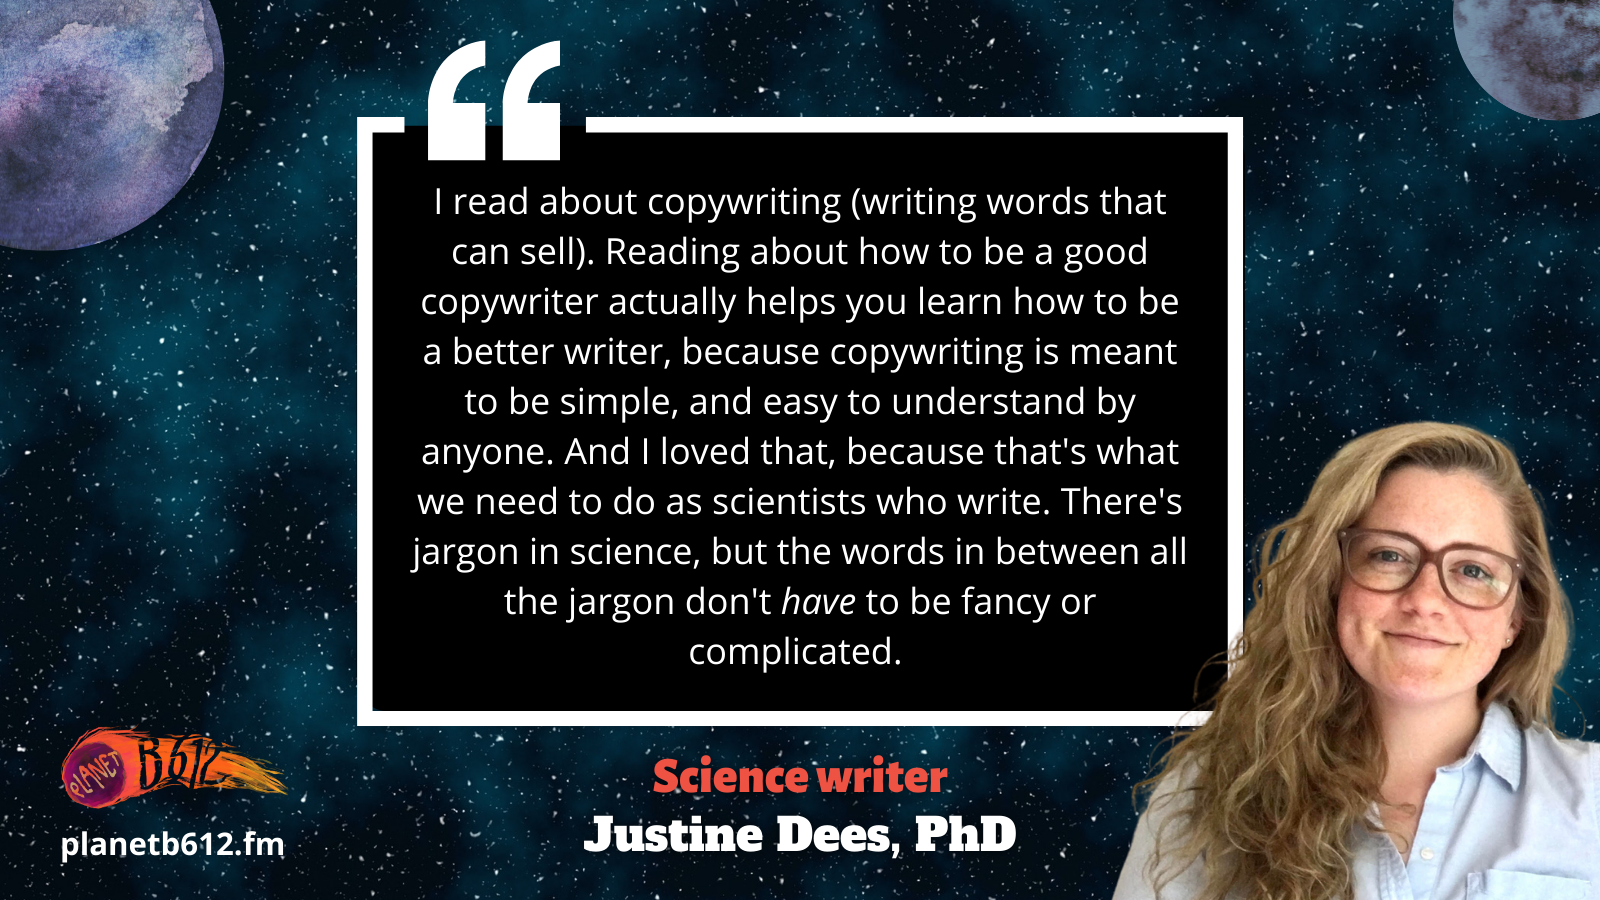 """Quote from Justine Dees, """"I read about copywriting (writing words that can sell). Reading about how to be a good copywriter actualy helps you learn how to be a better writer, because copywriting is meant to be simple, and easy to understand by anyone. And I loved that, because that's what we need to do as scientists who write. There's jargon in science, but the words in between all the jargon don't have to be fancy or complicated."""" PhD: """""""